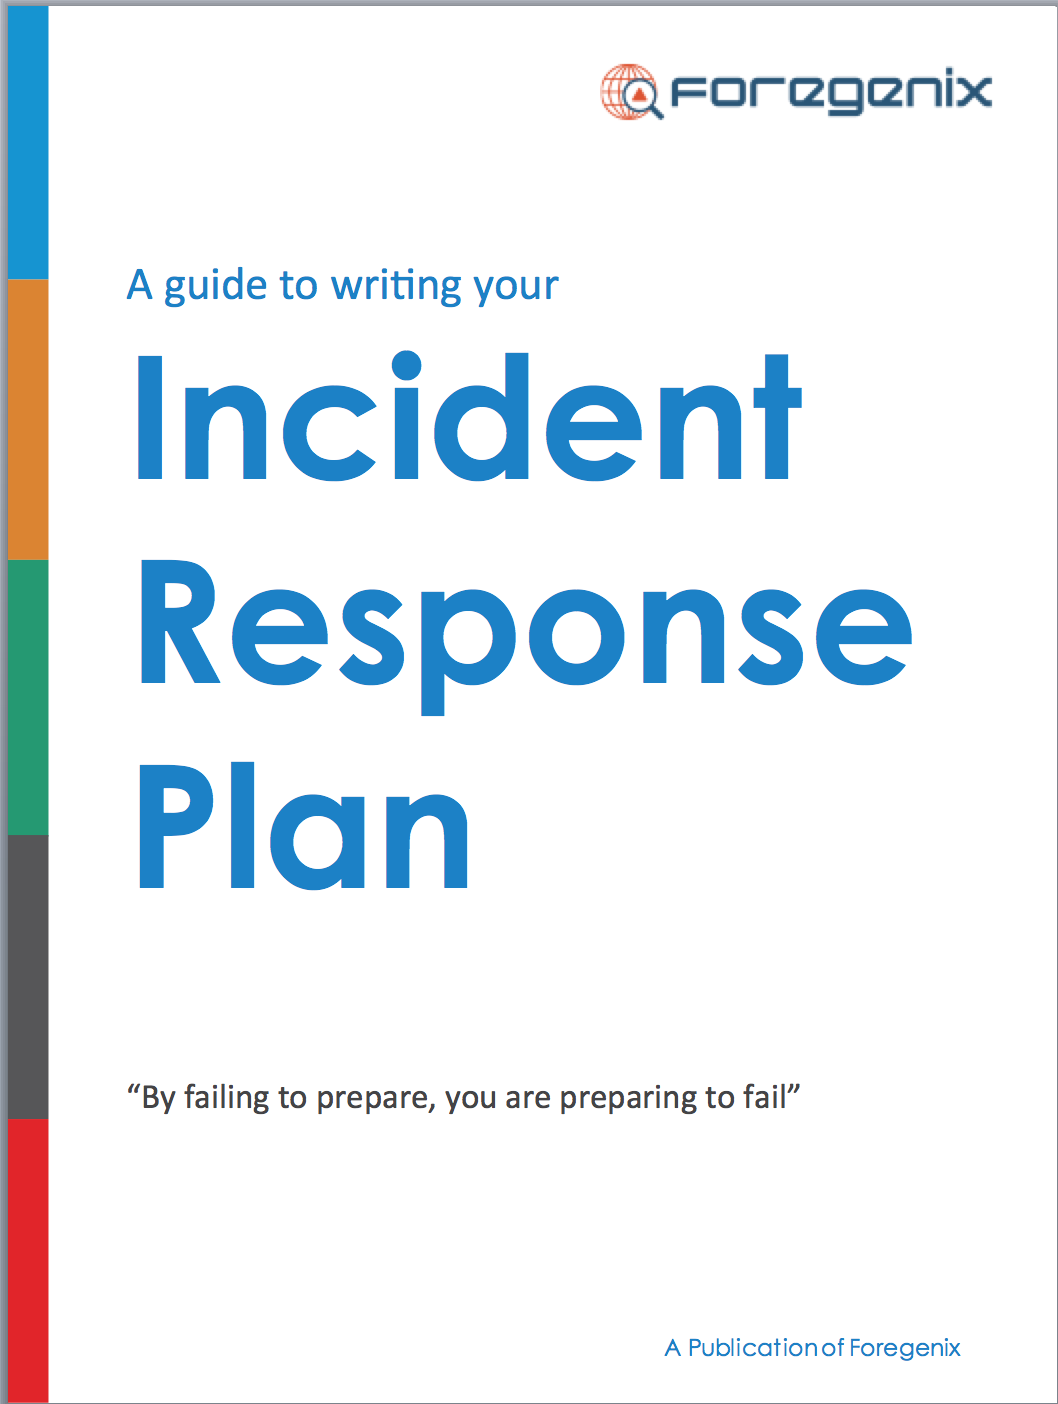 Foregenix_Incident_Response_Planning_Guide.png